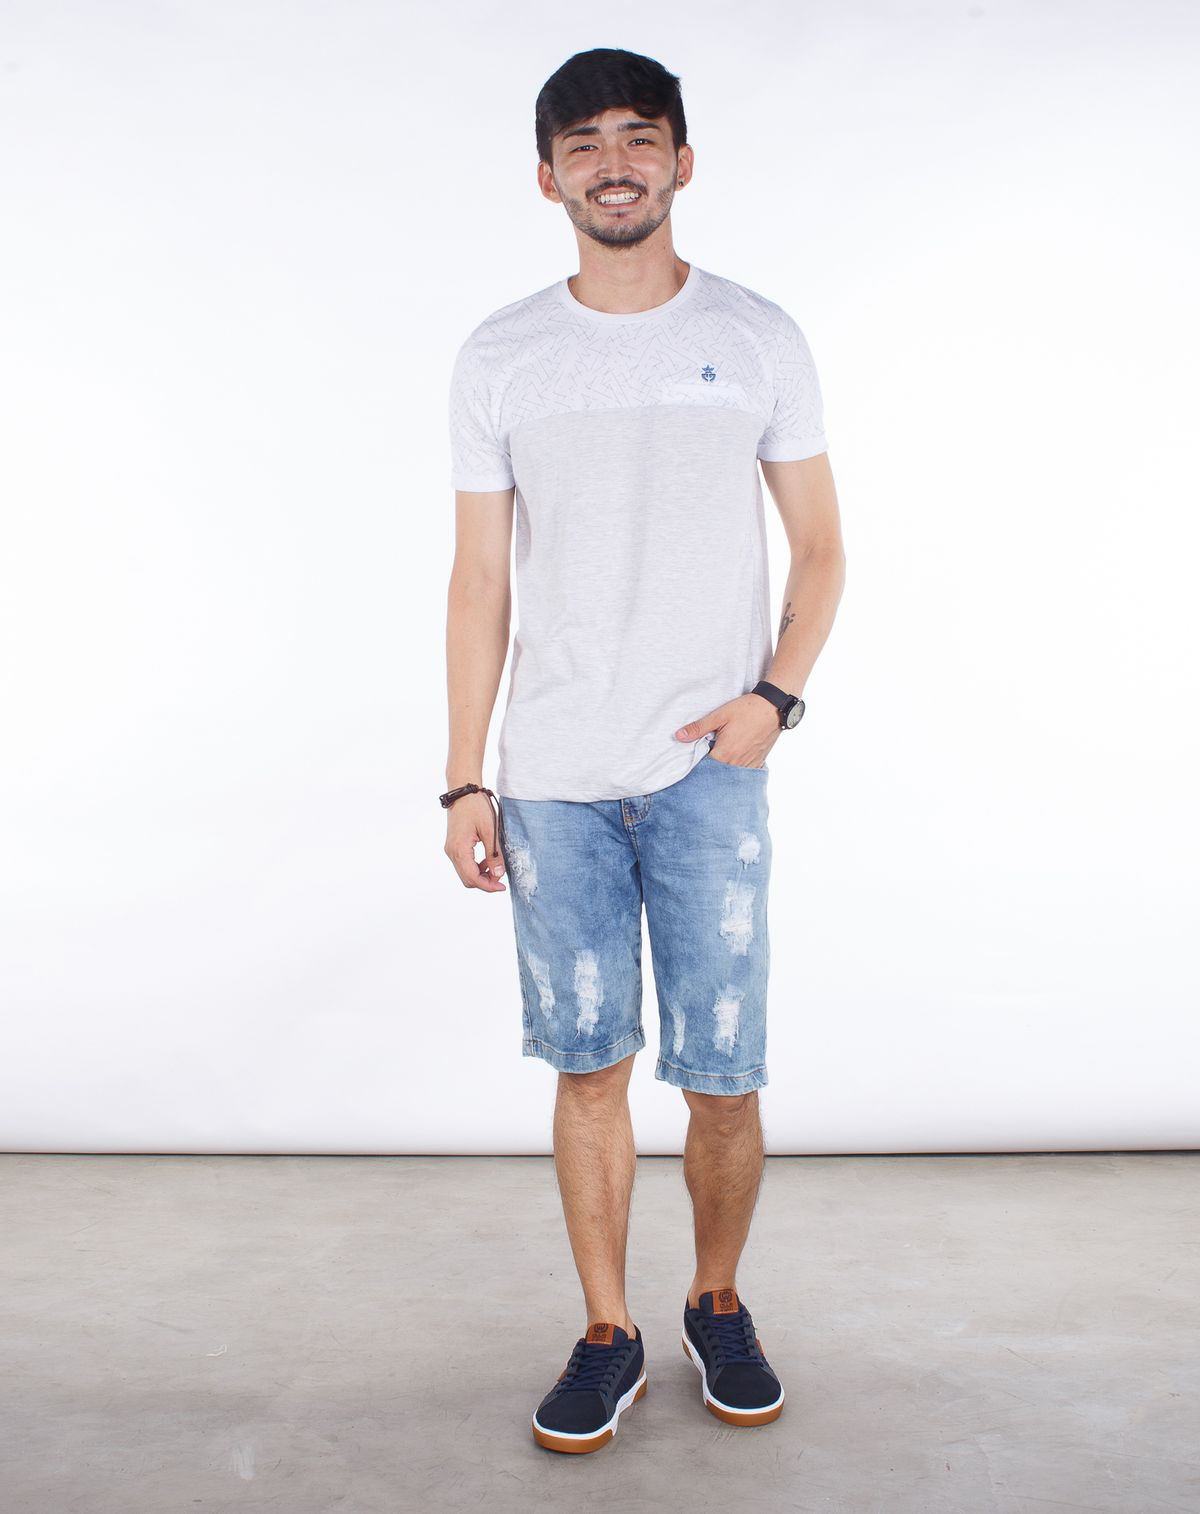 565375005-bermuda-jeans-marmoriza-masculina-destroyed-jeans-46-38d